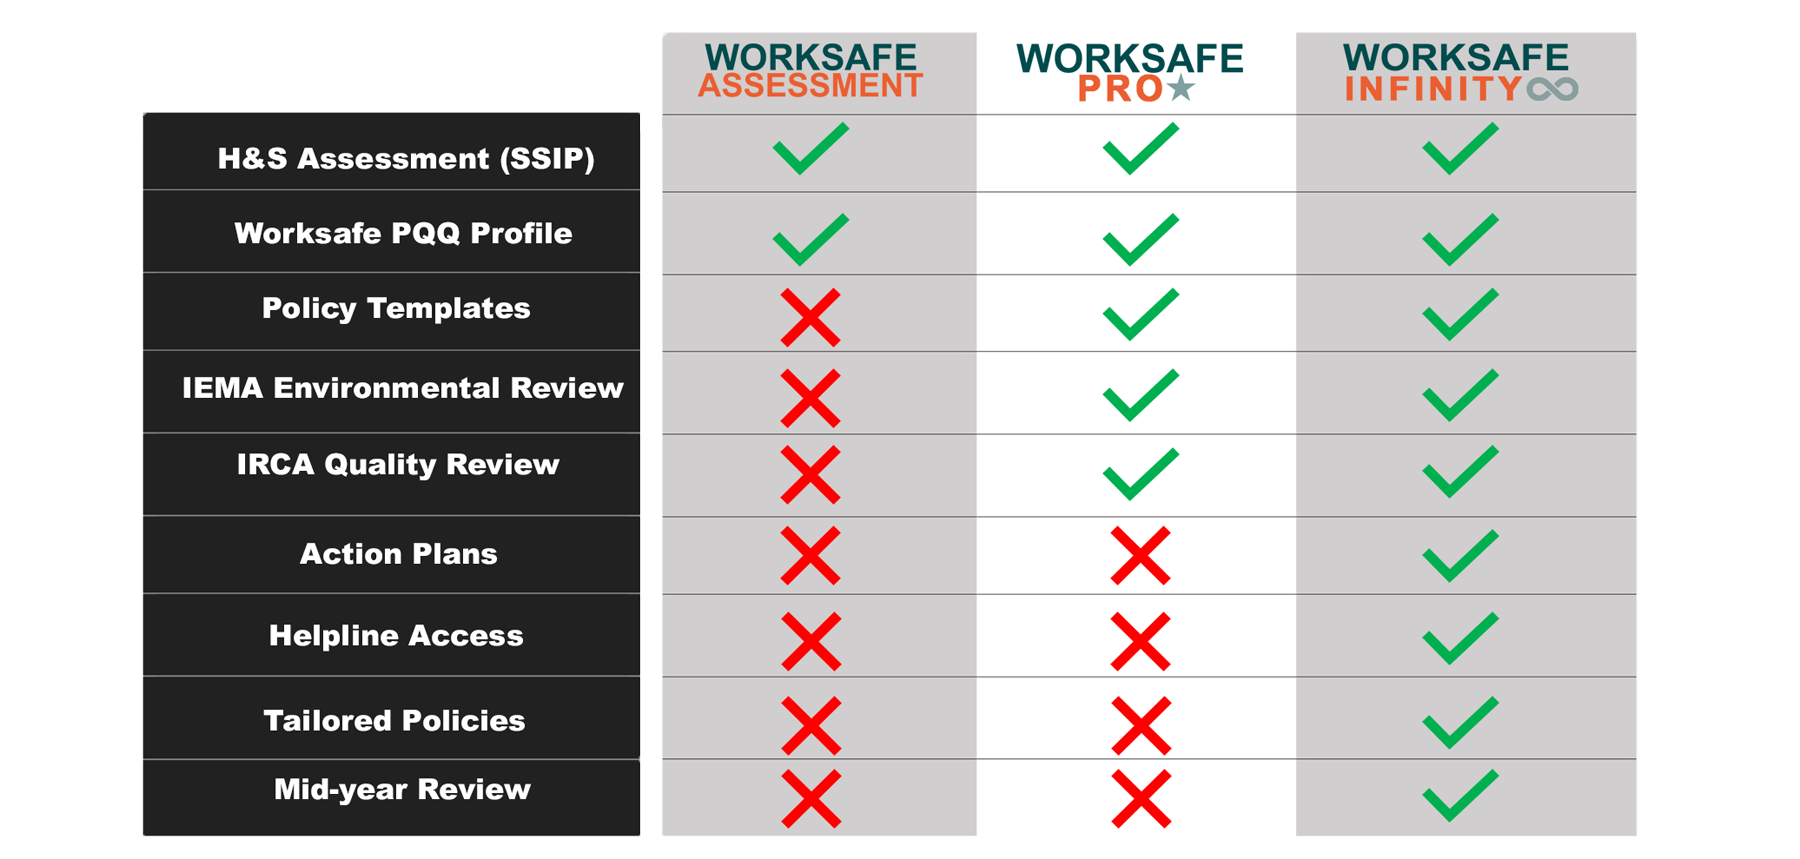 SMAS Worksafe Assessment, pro and infinity table